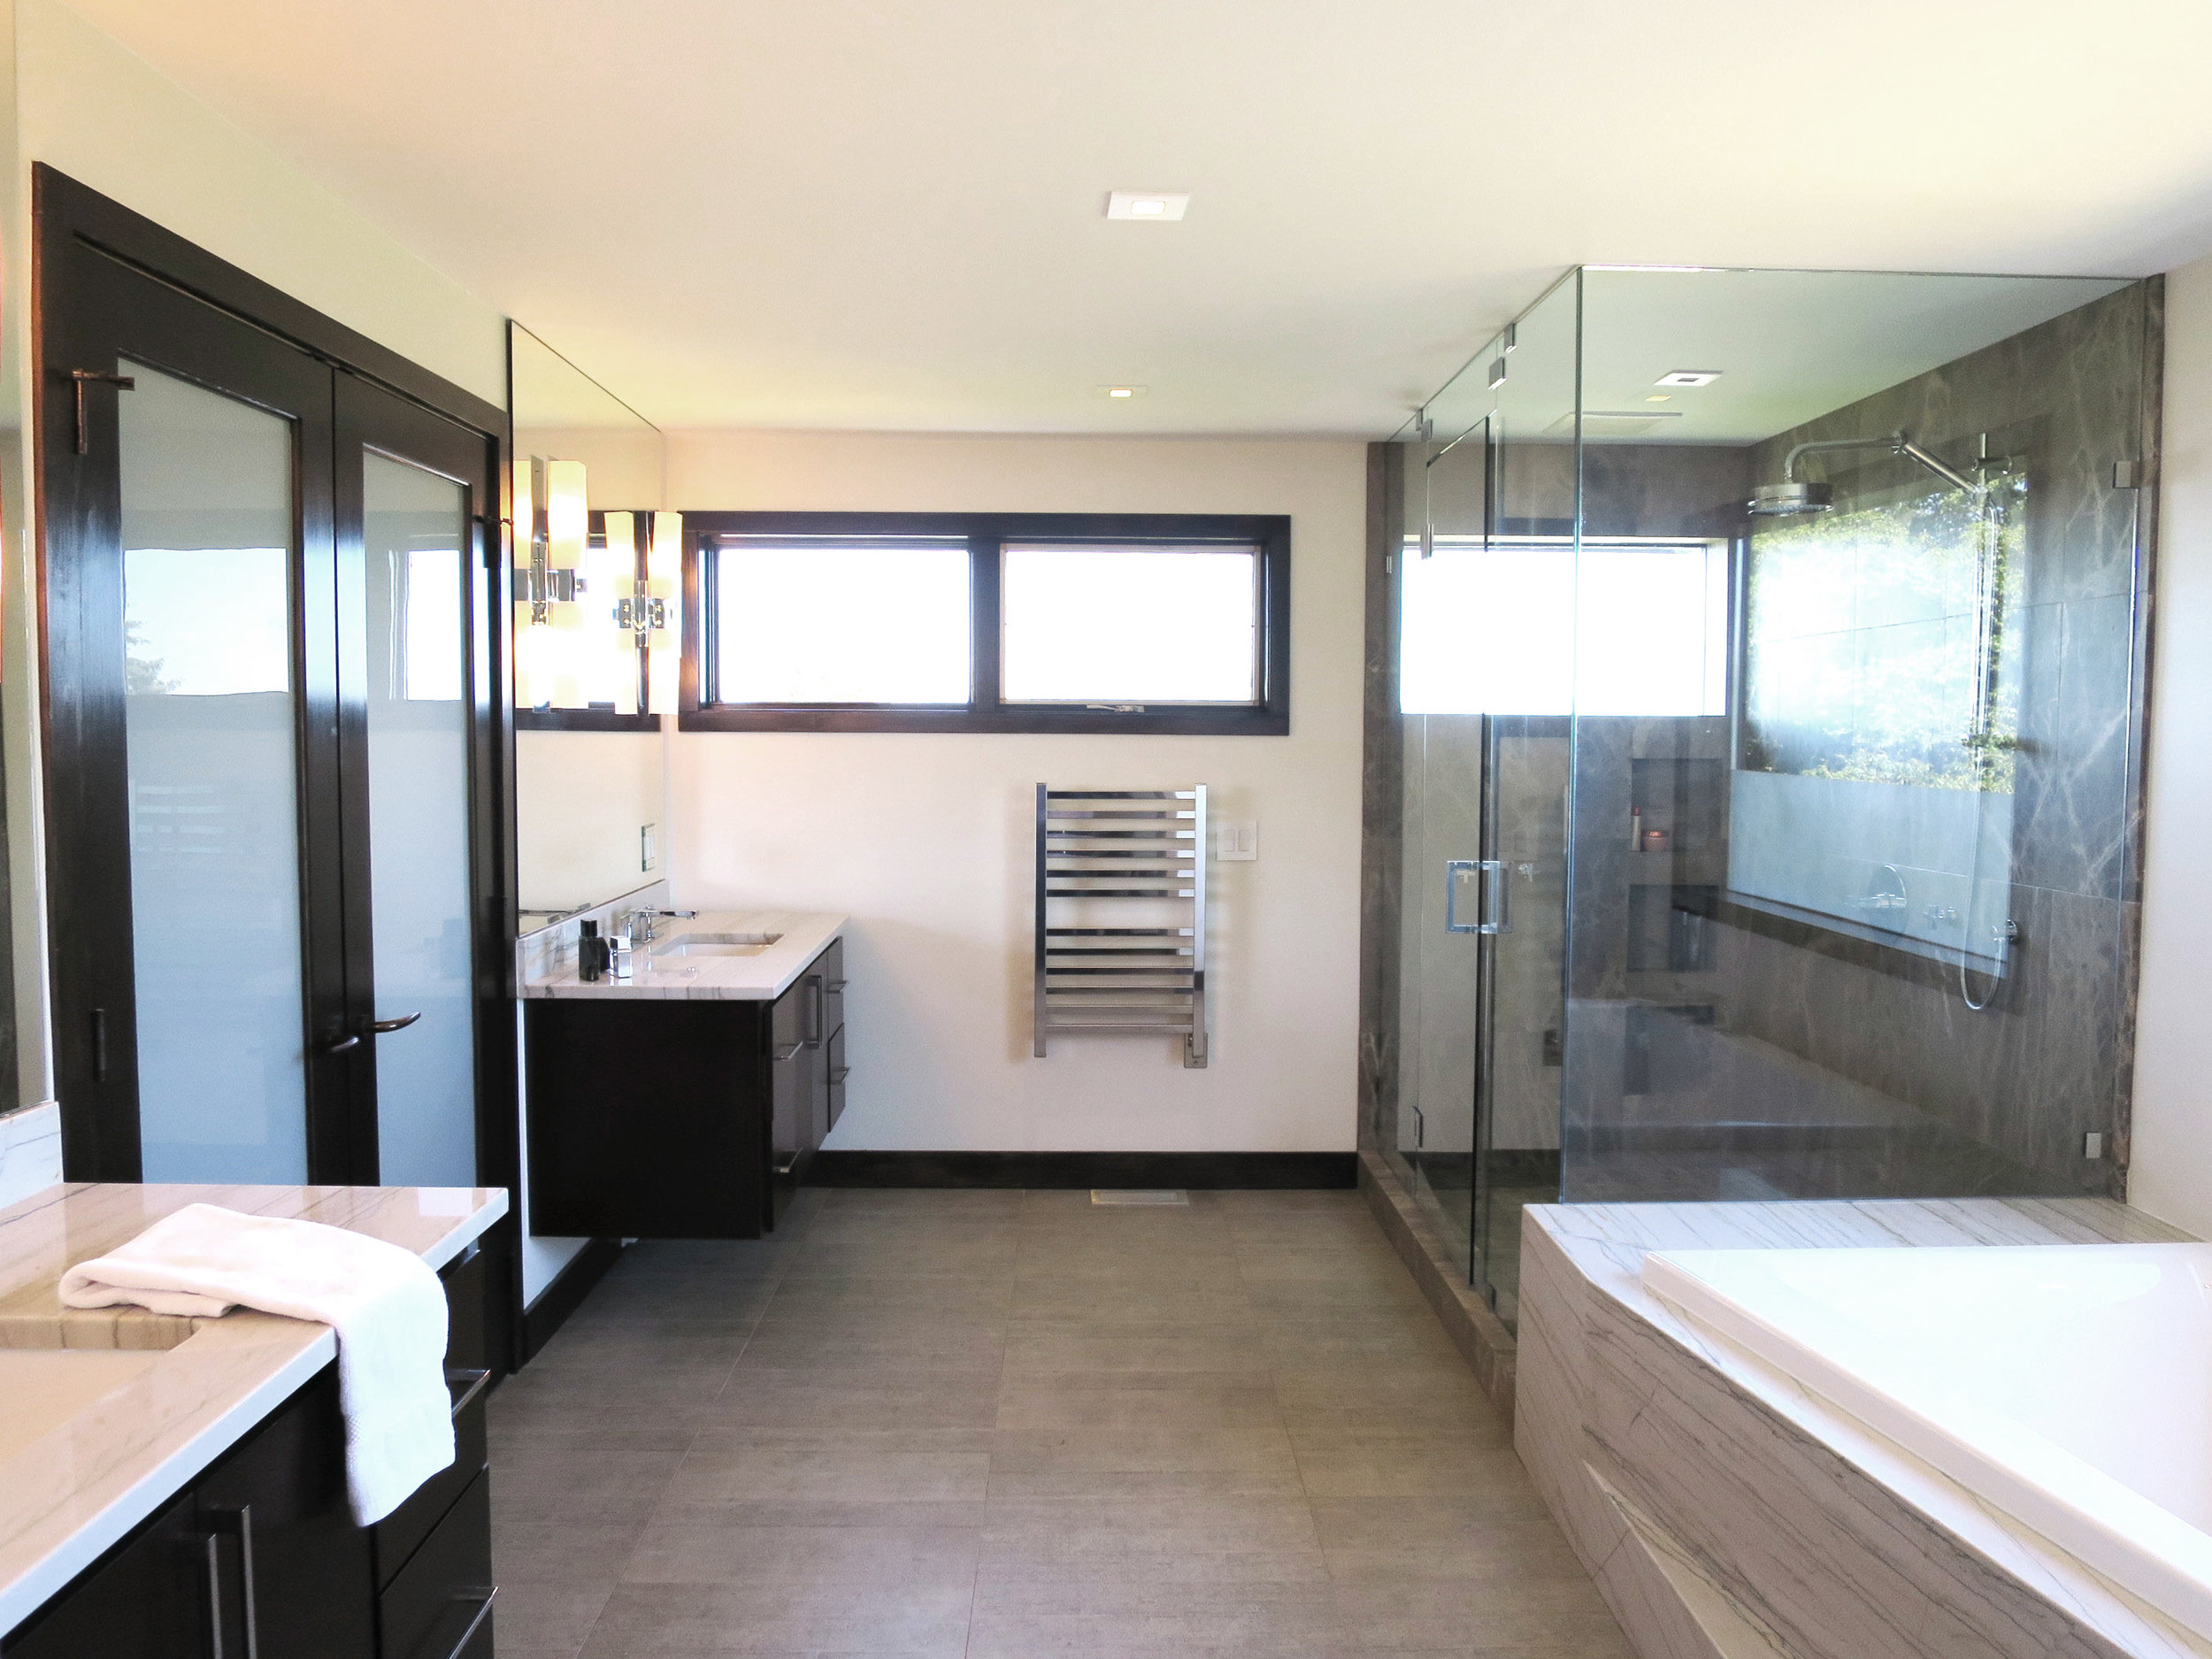 Luxurious Master Bathroom View 1